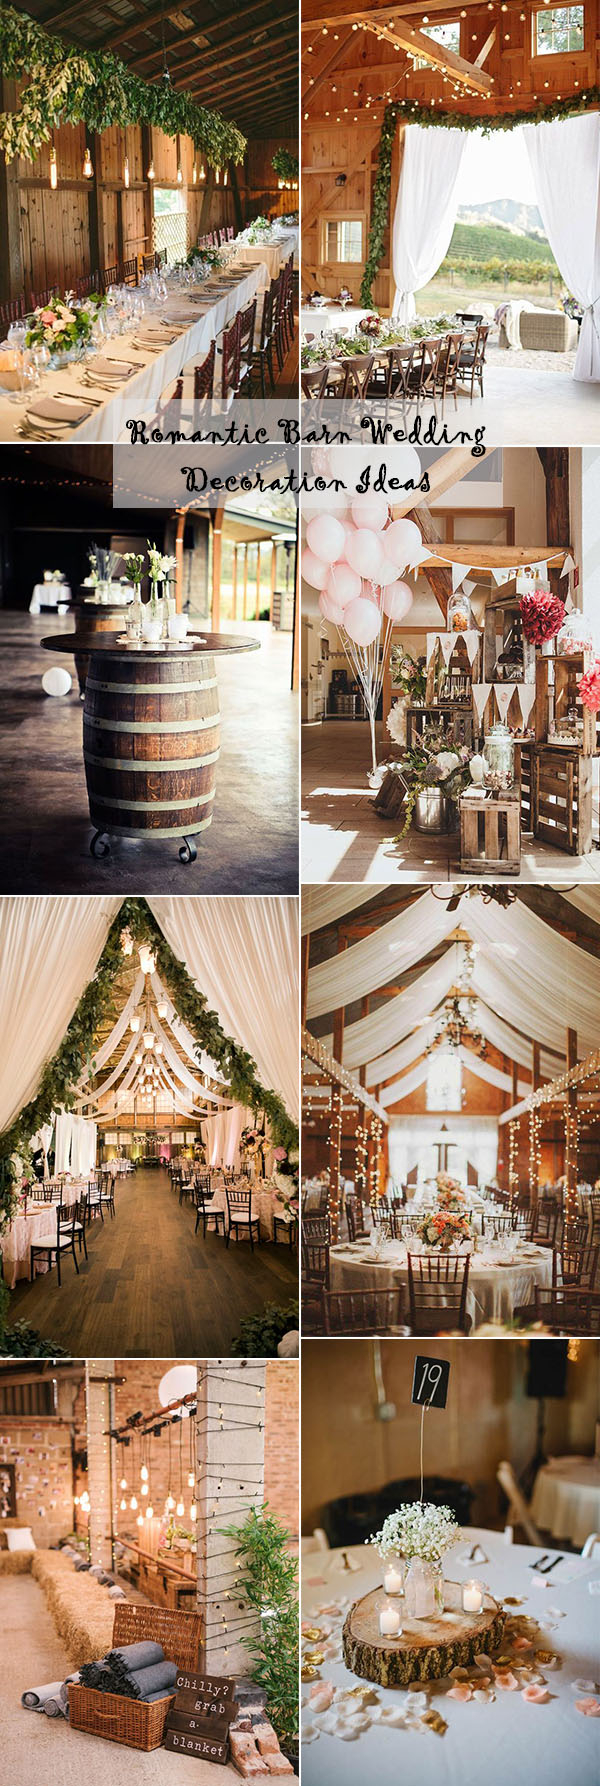 Wedding Ideas Decoration 25 Sweet And Romantic Rustic Barn Wedding Decoration Ideas